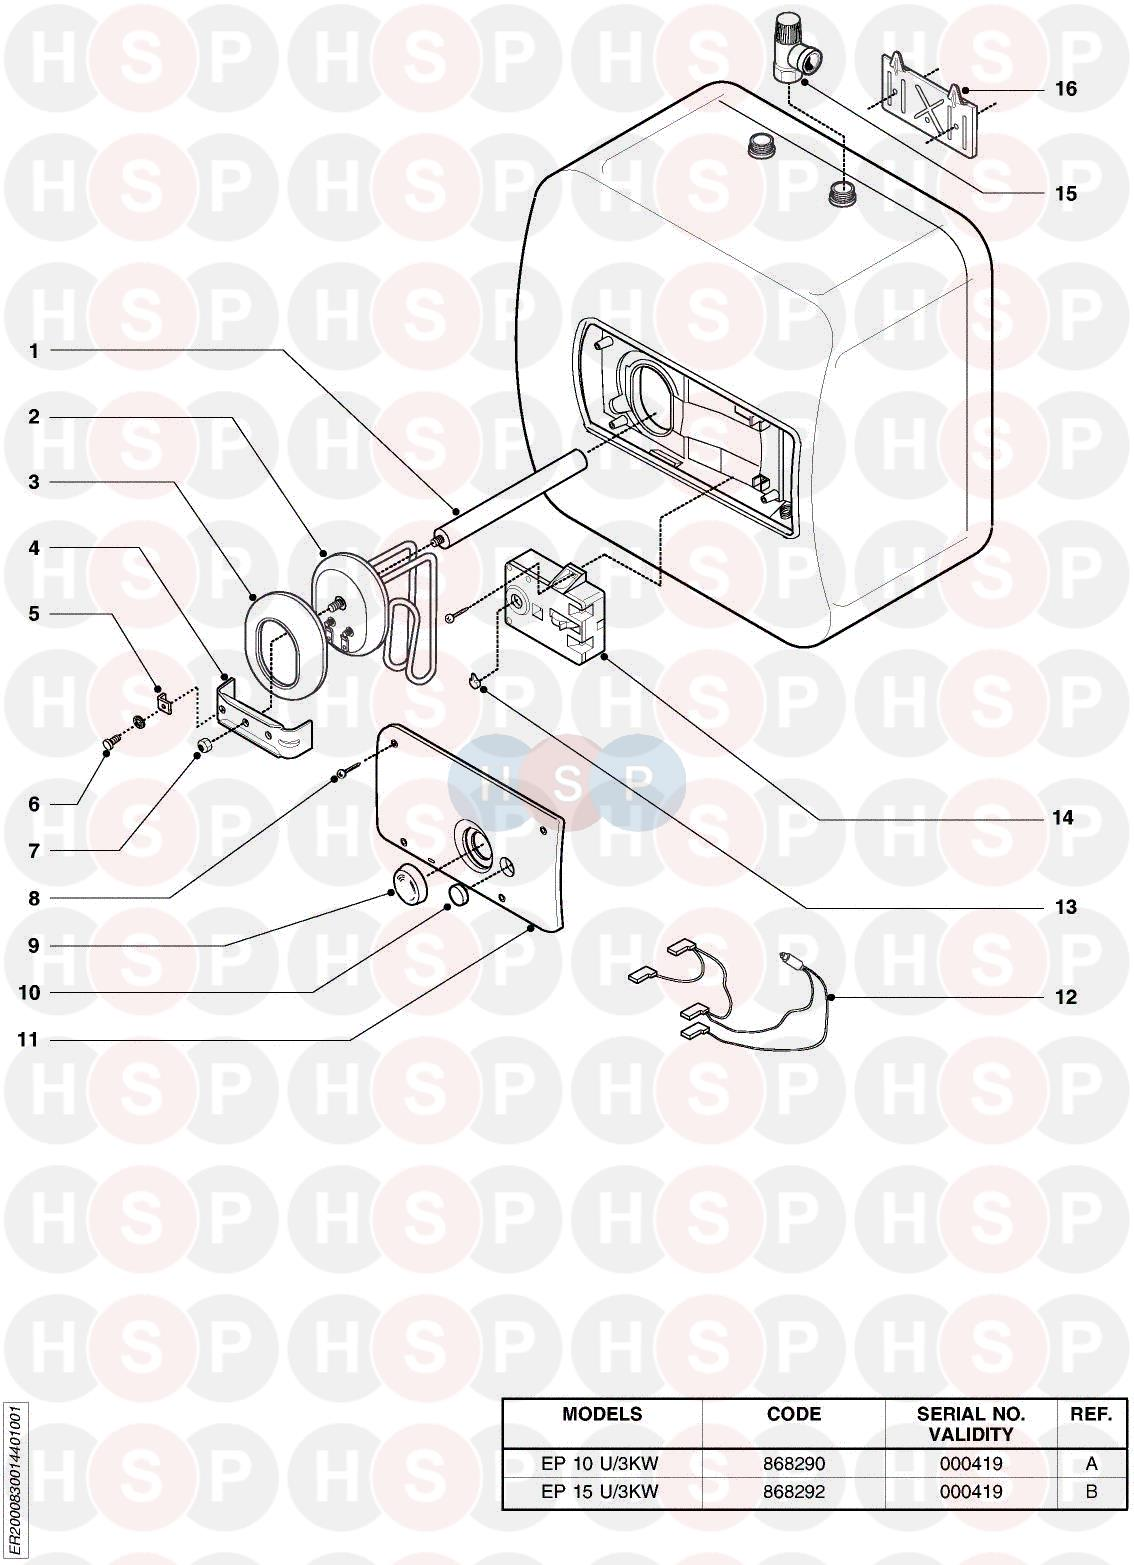 Ariston EP 10 U3KW EDITION 1 (EXPLODED VIEW) Diagram